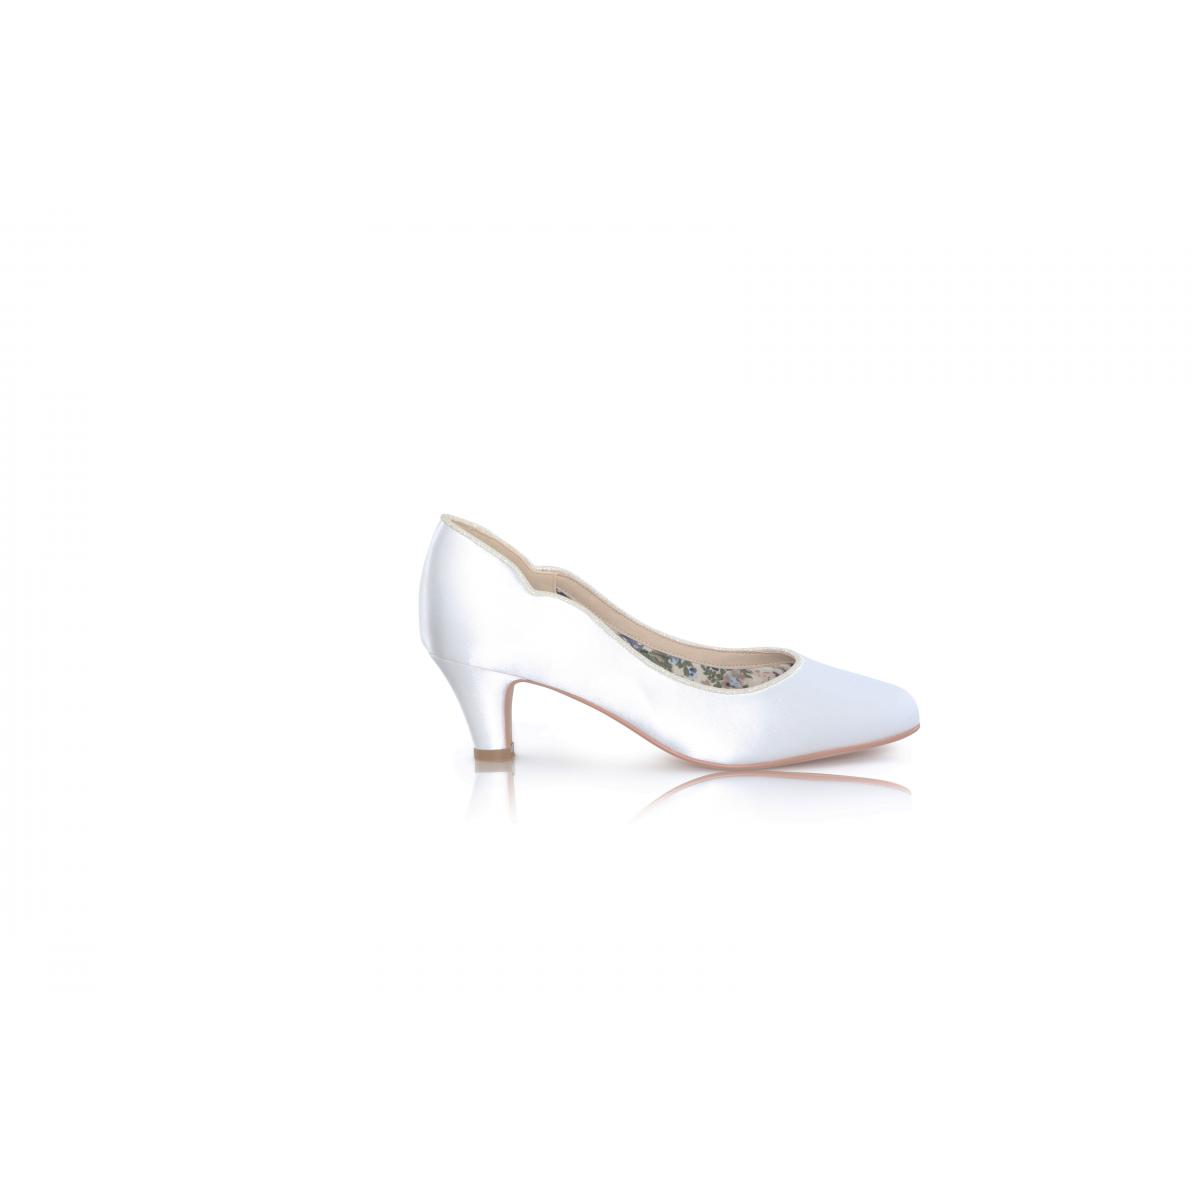 Perfect Bridal Adelyn Shoes - Ivory Satin 1